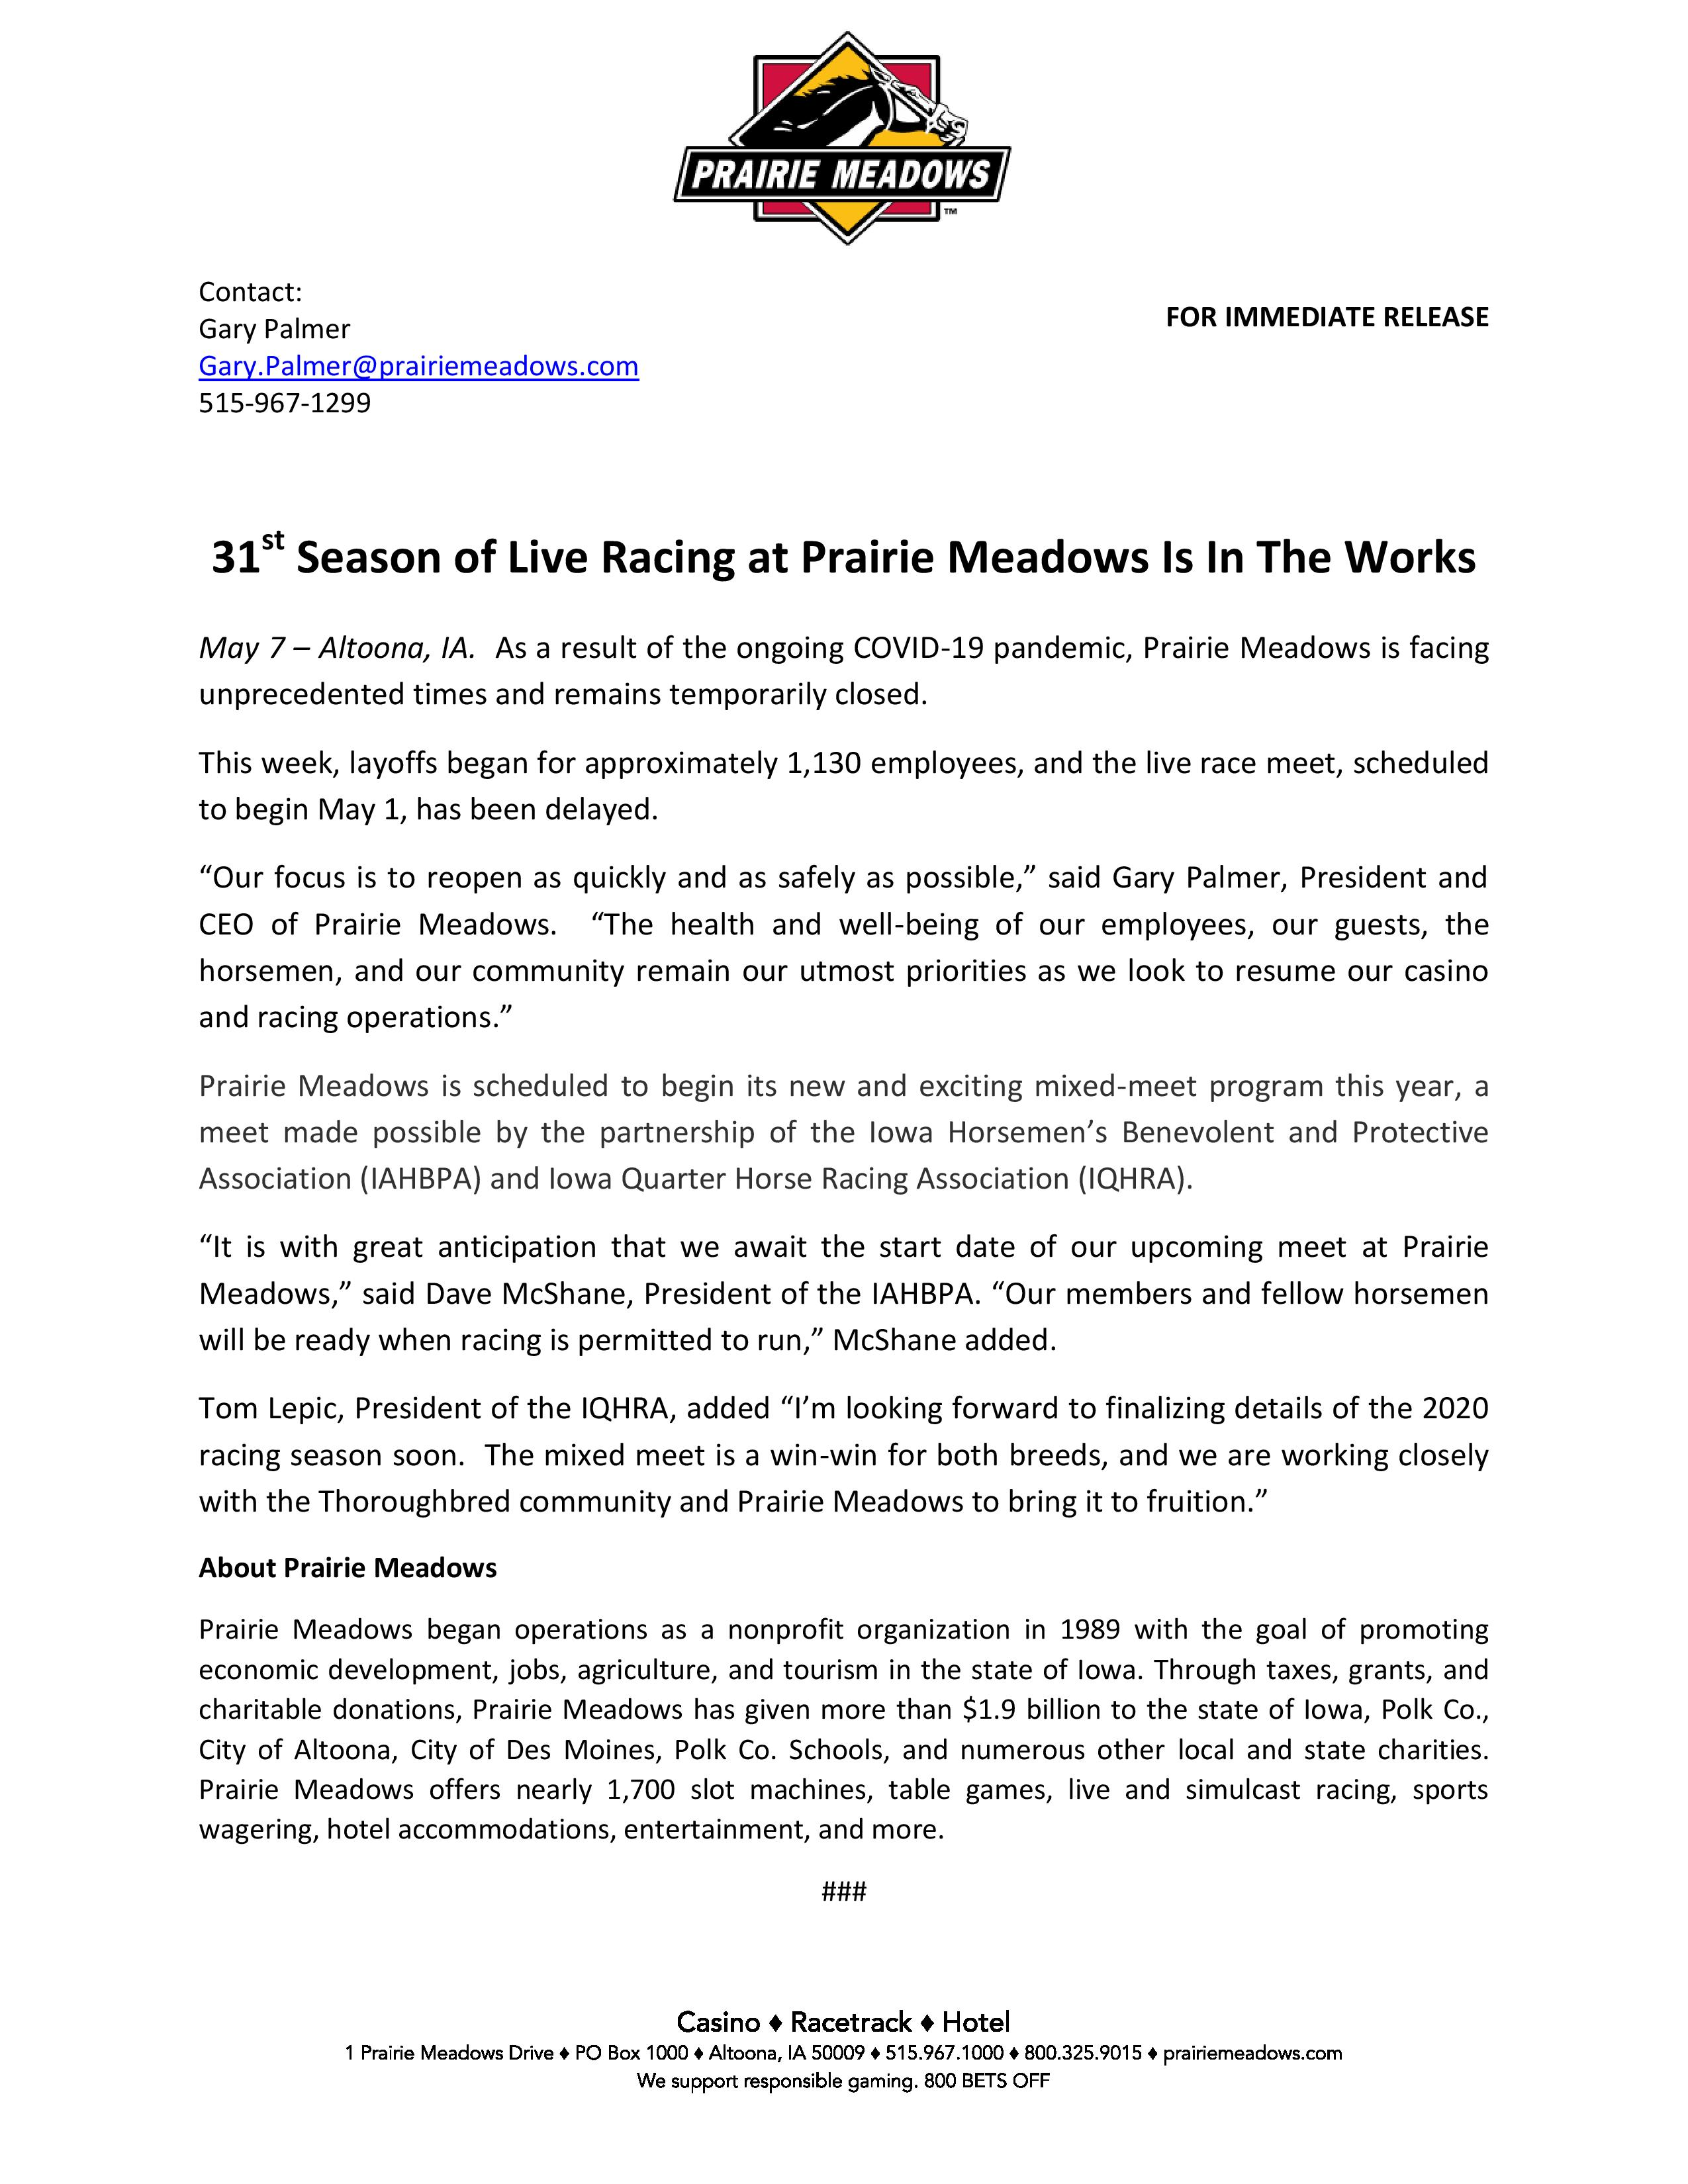 Media Alert – 31st Season of Live Racing at Prairie Meadows Is In The Works